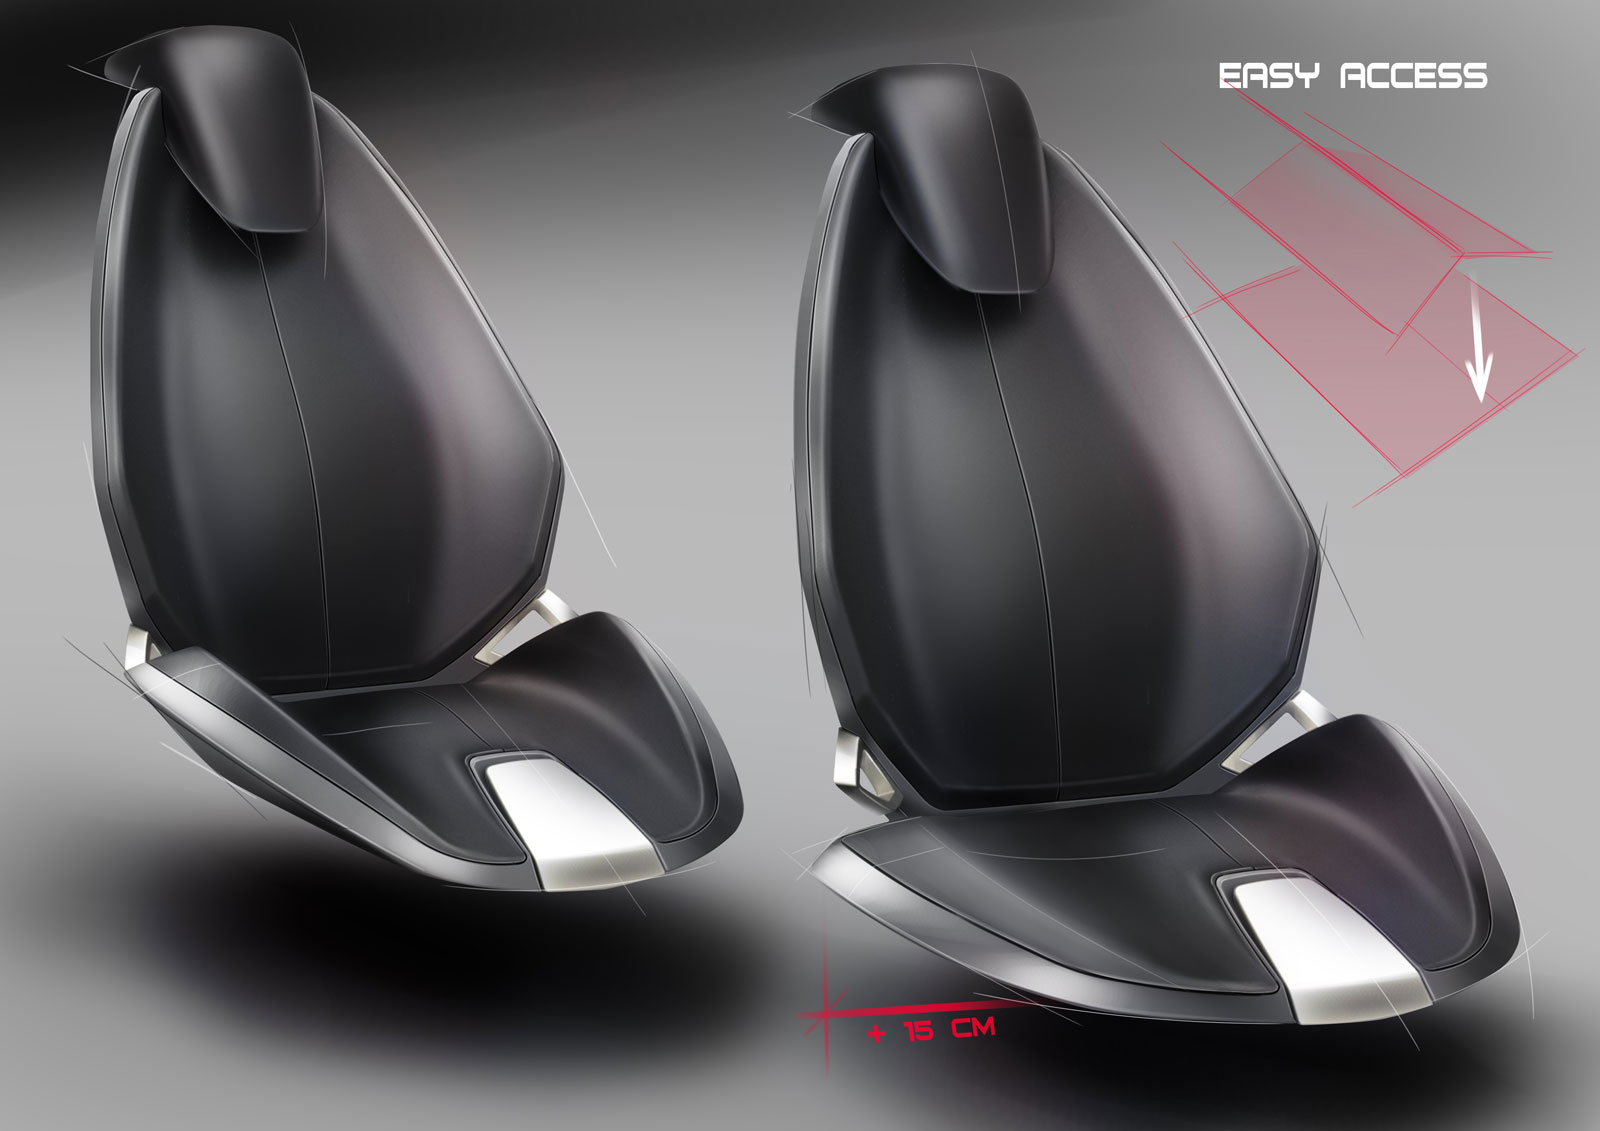 Spd Concept Car Interior Seat Design Sketches Car Body Design